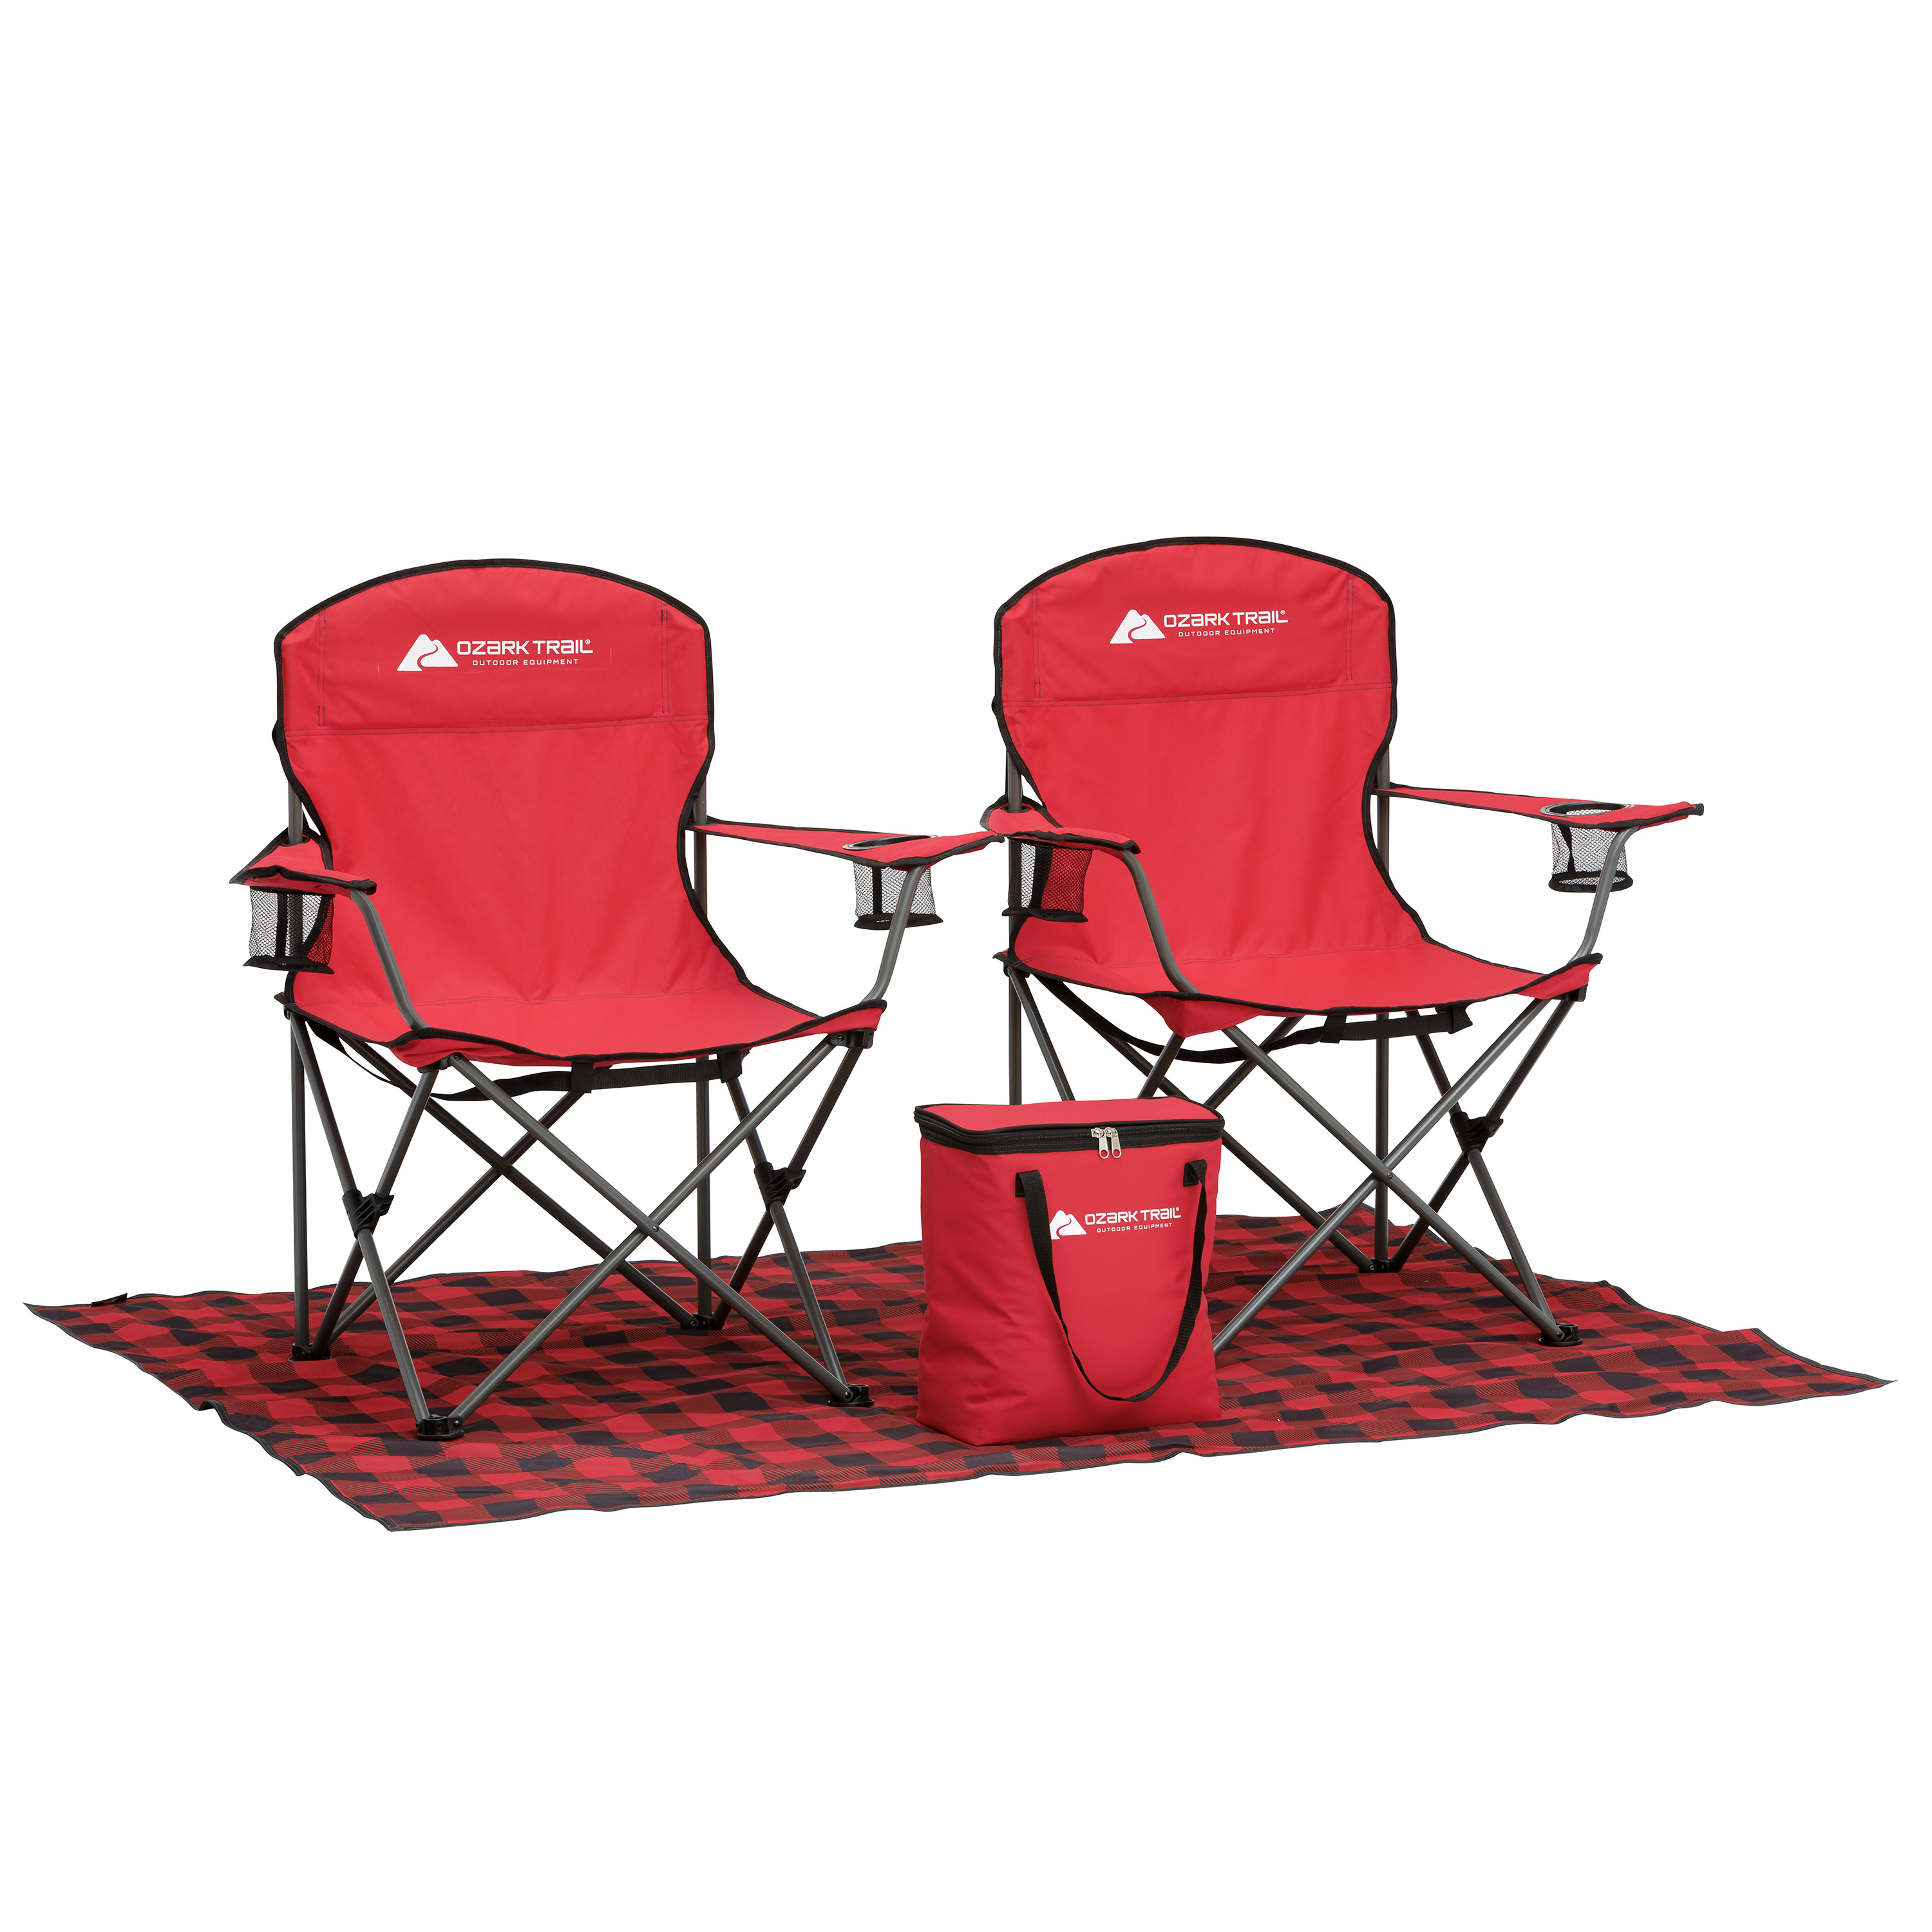 Ozark Trail Mini Tailgate Combo with Footprint, Cooler, and Chairs